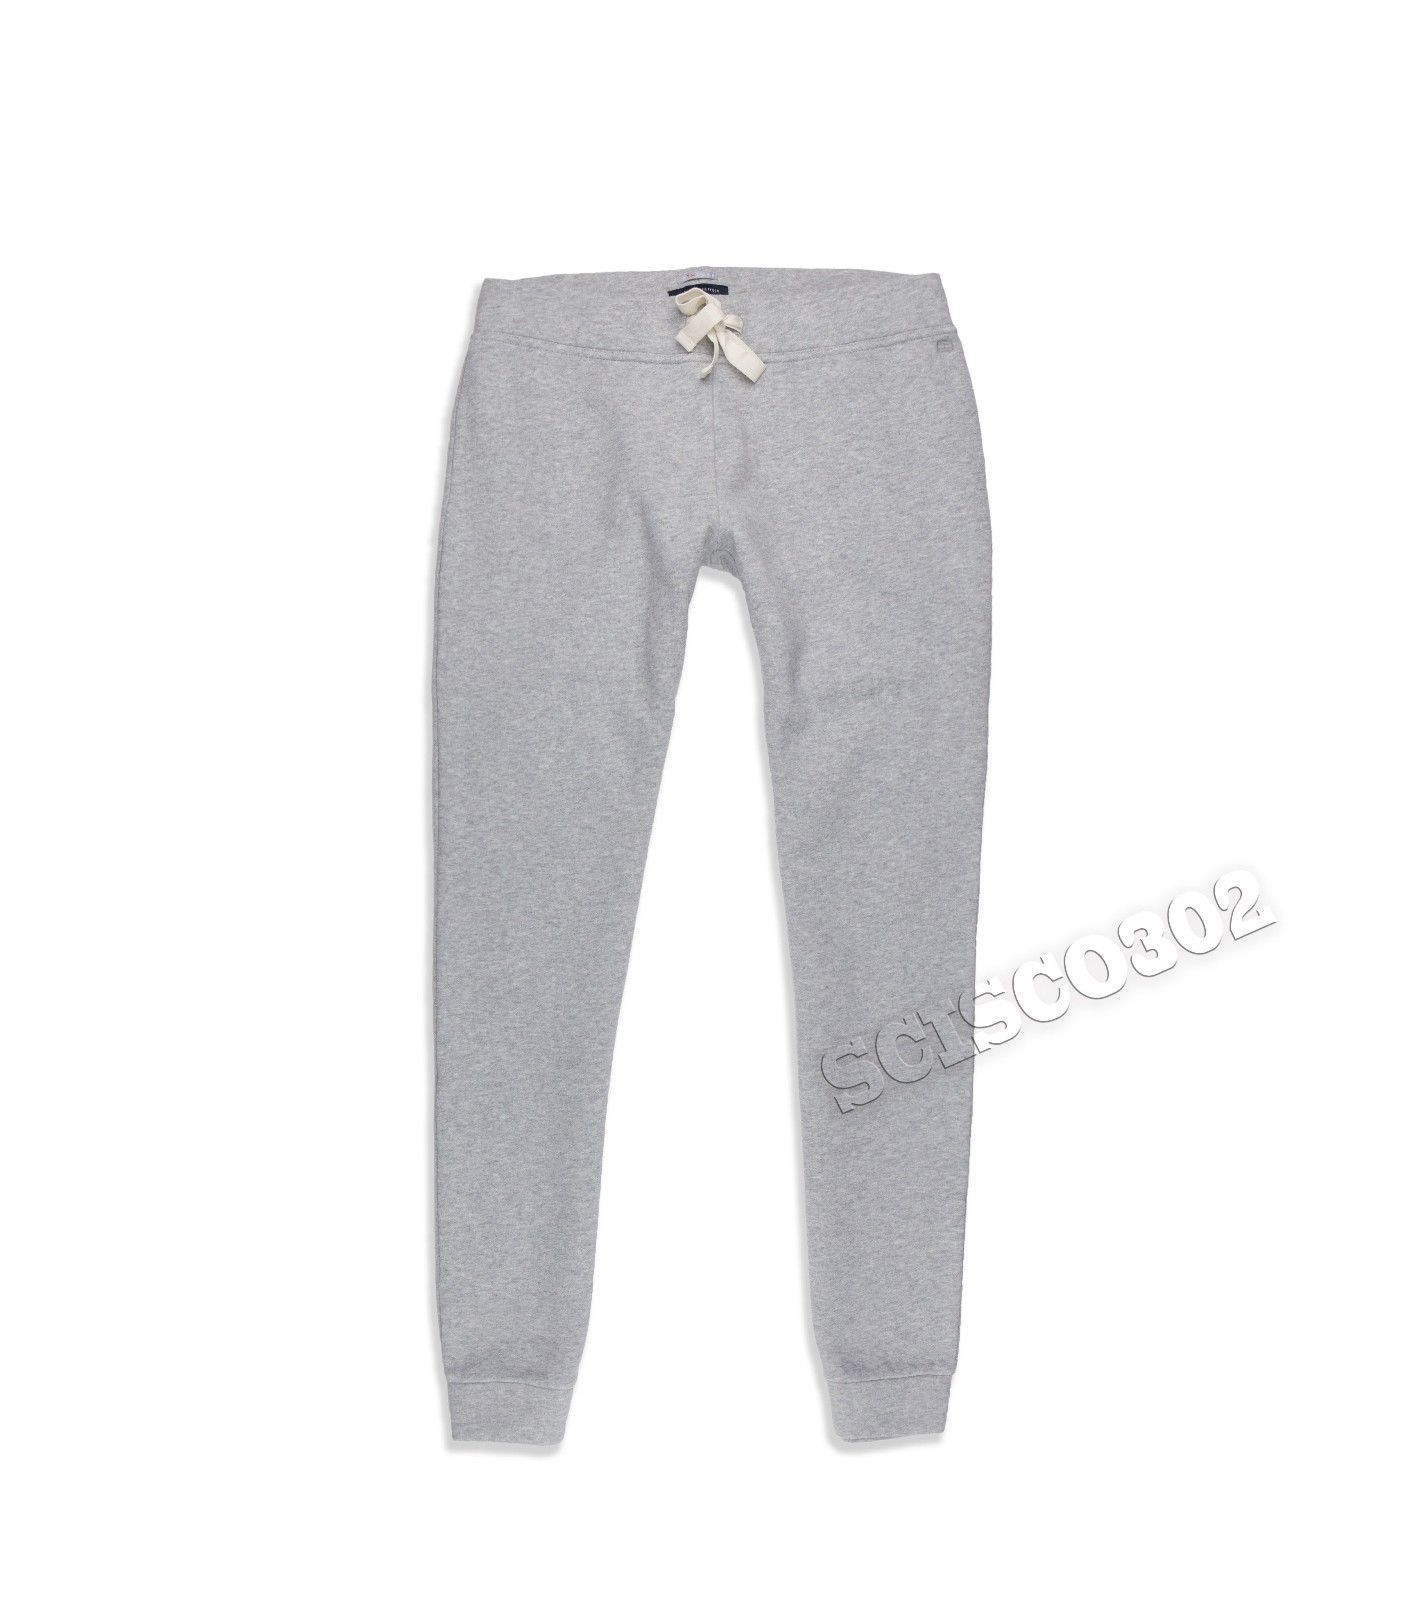 100% Original Tommy Hilfiger Athletic Product Style: Women's Sweatpants Joggers Material: Cotton Blend Color: Gray